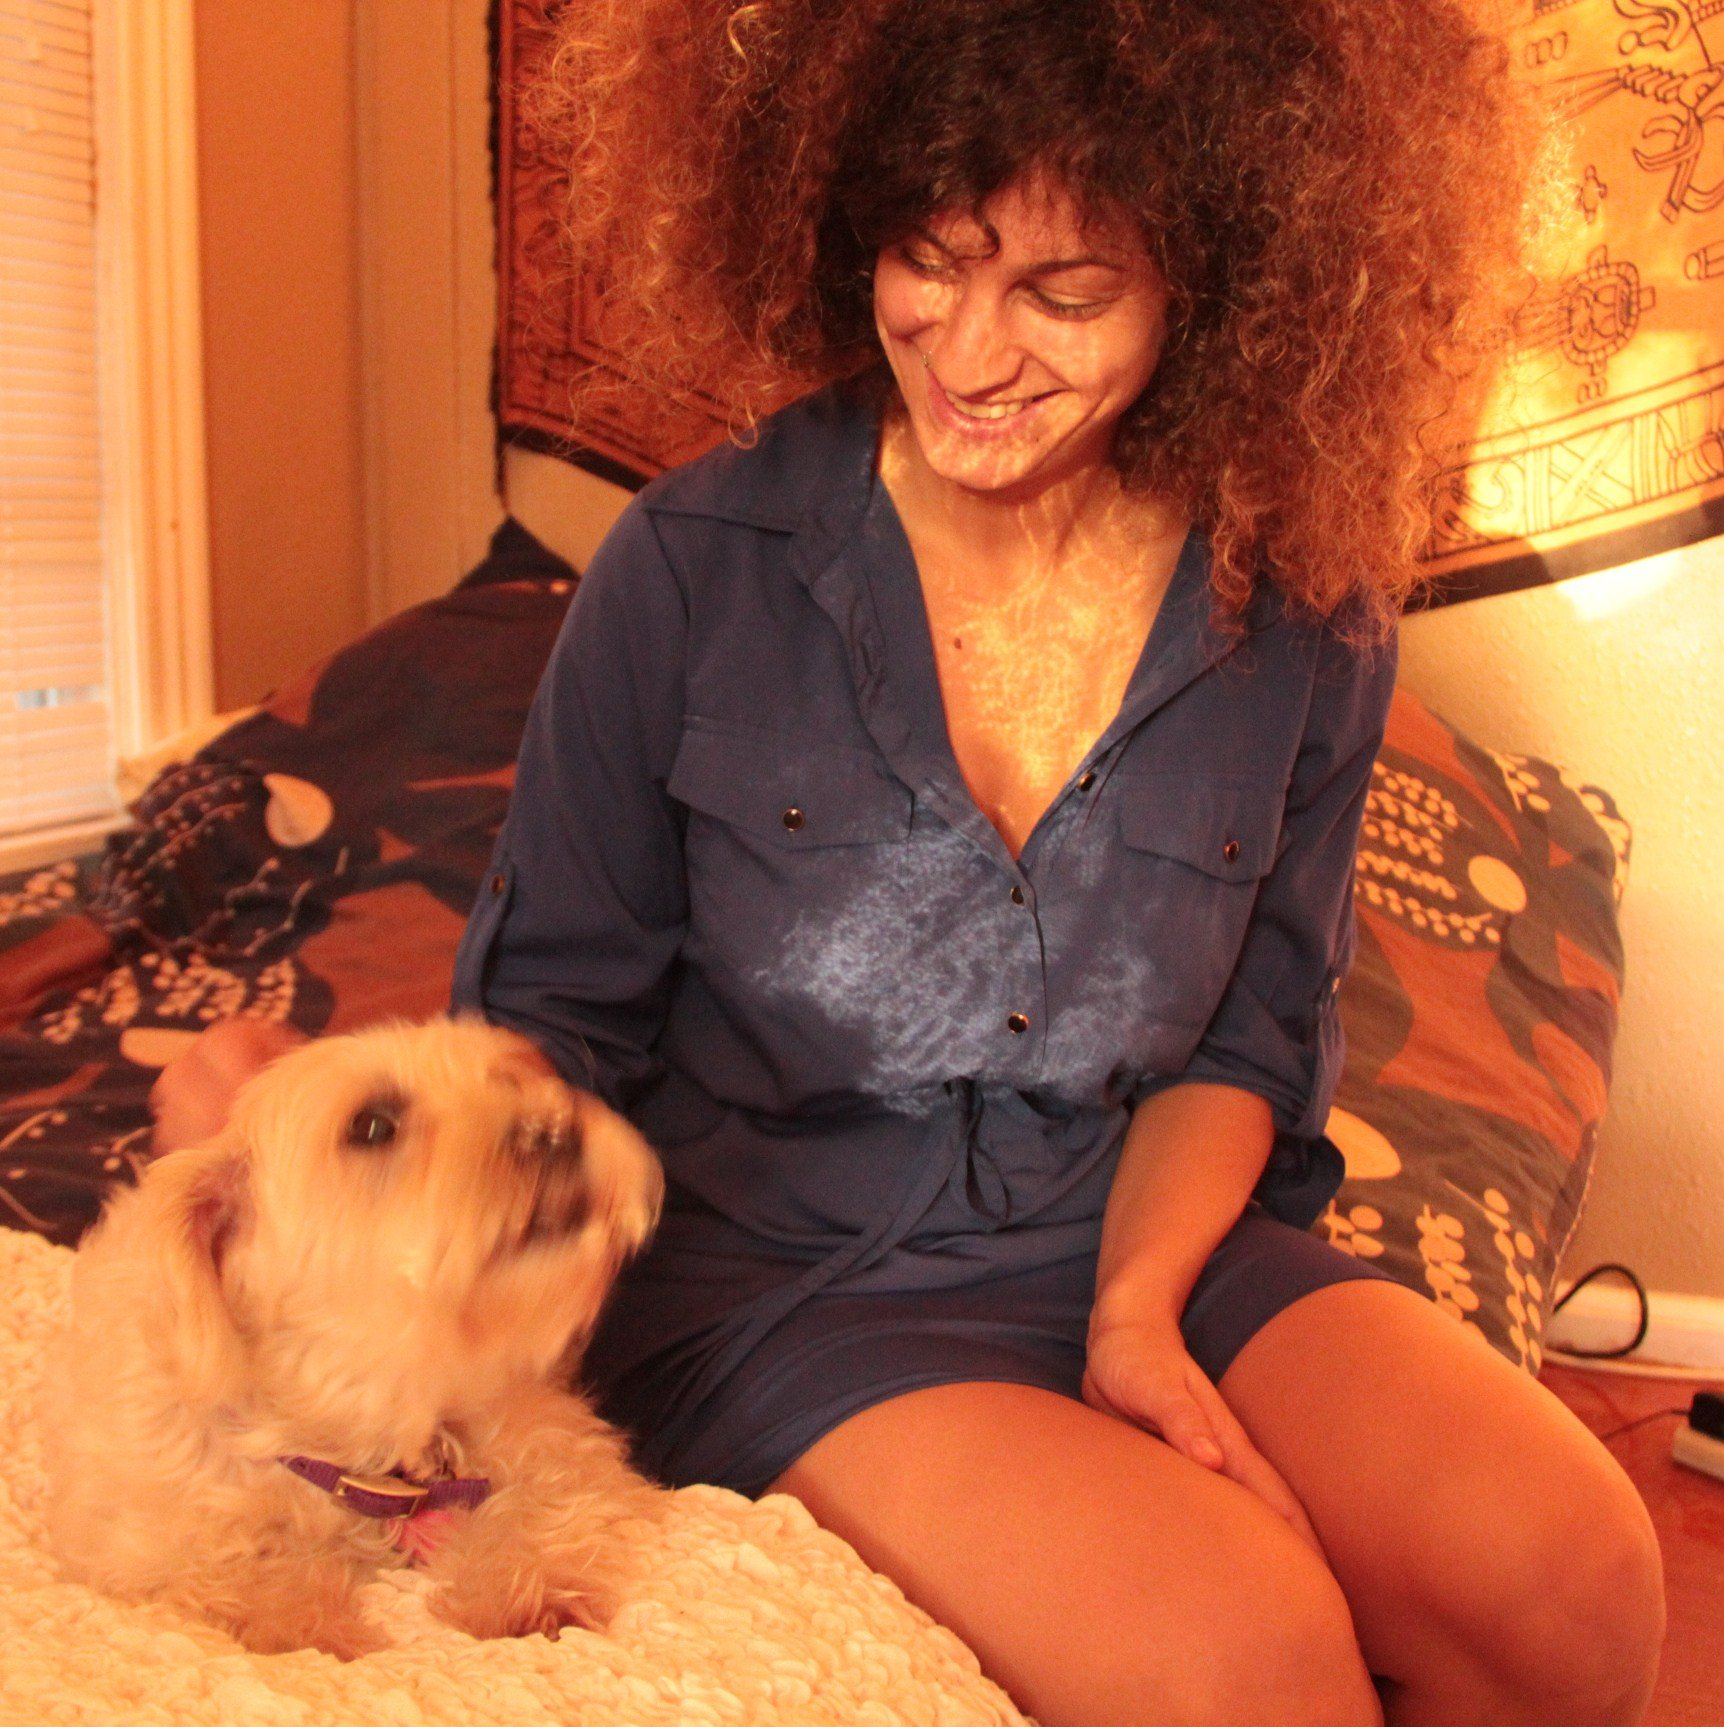 At home with Shahar Eberzon.(2013)